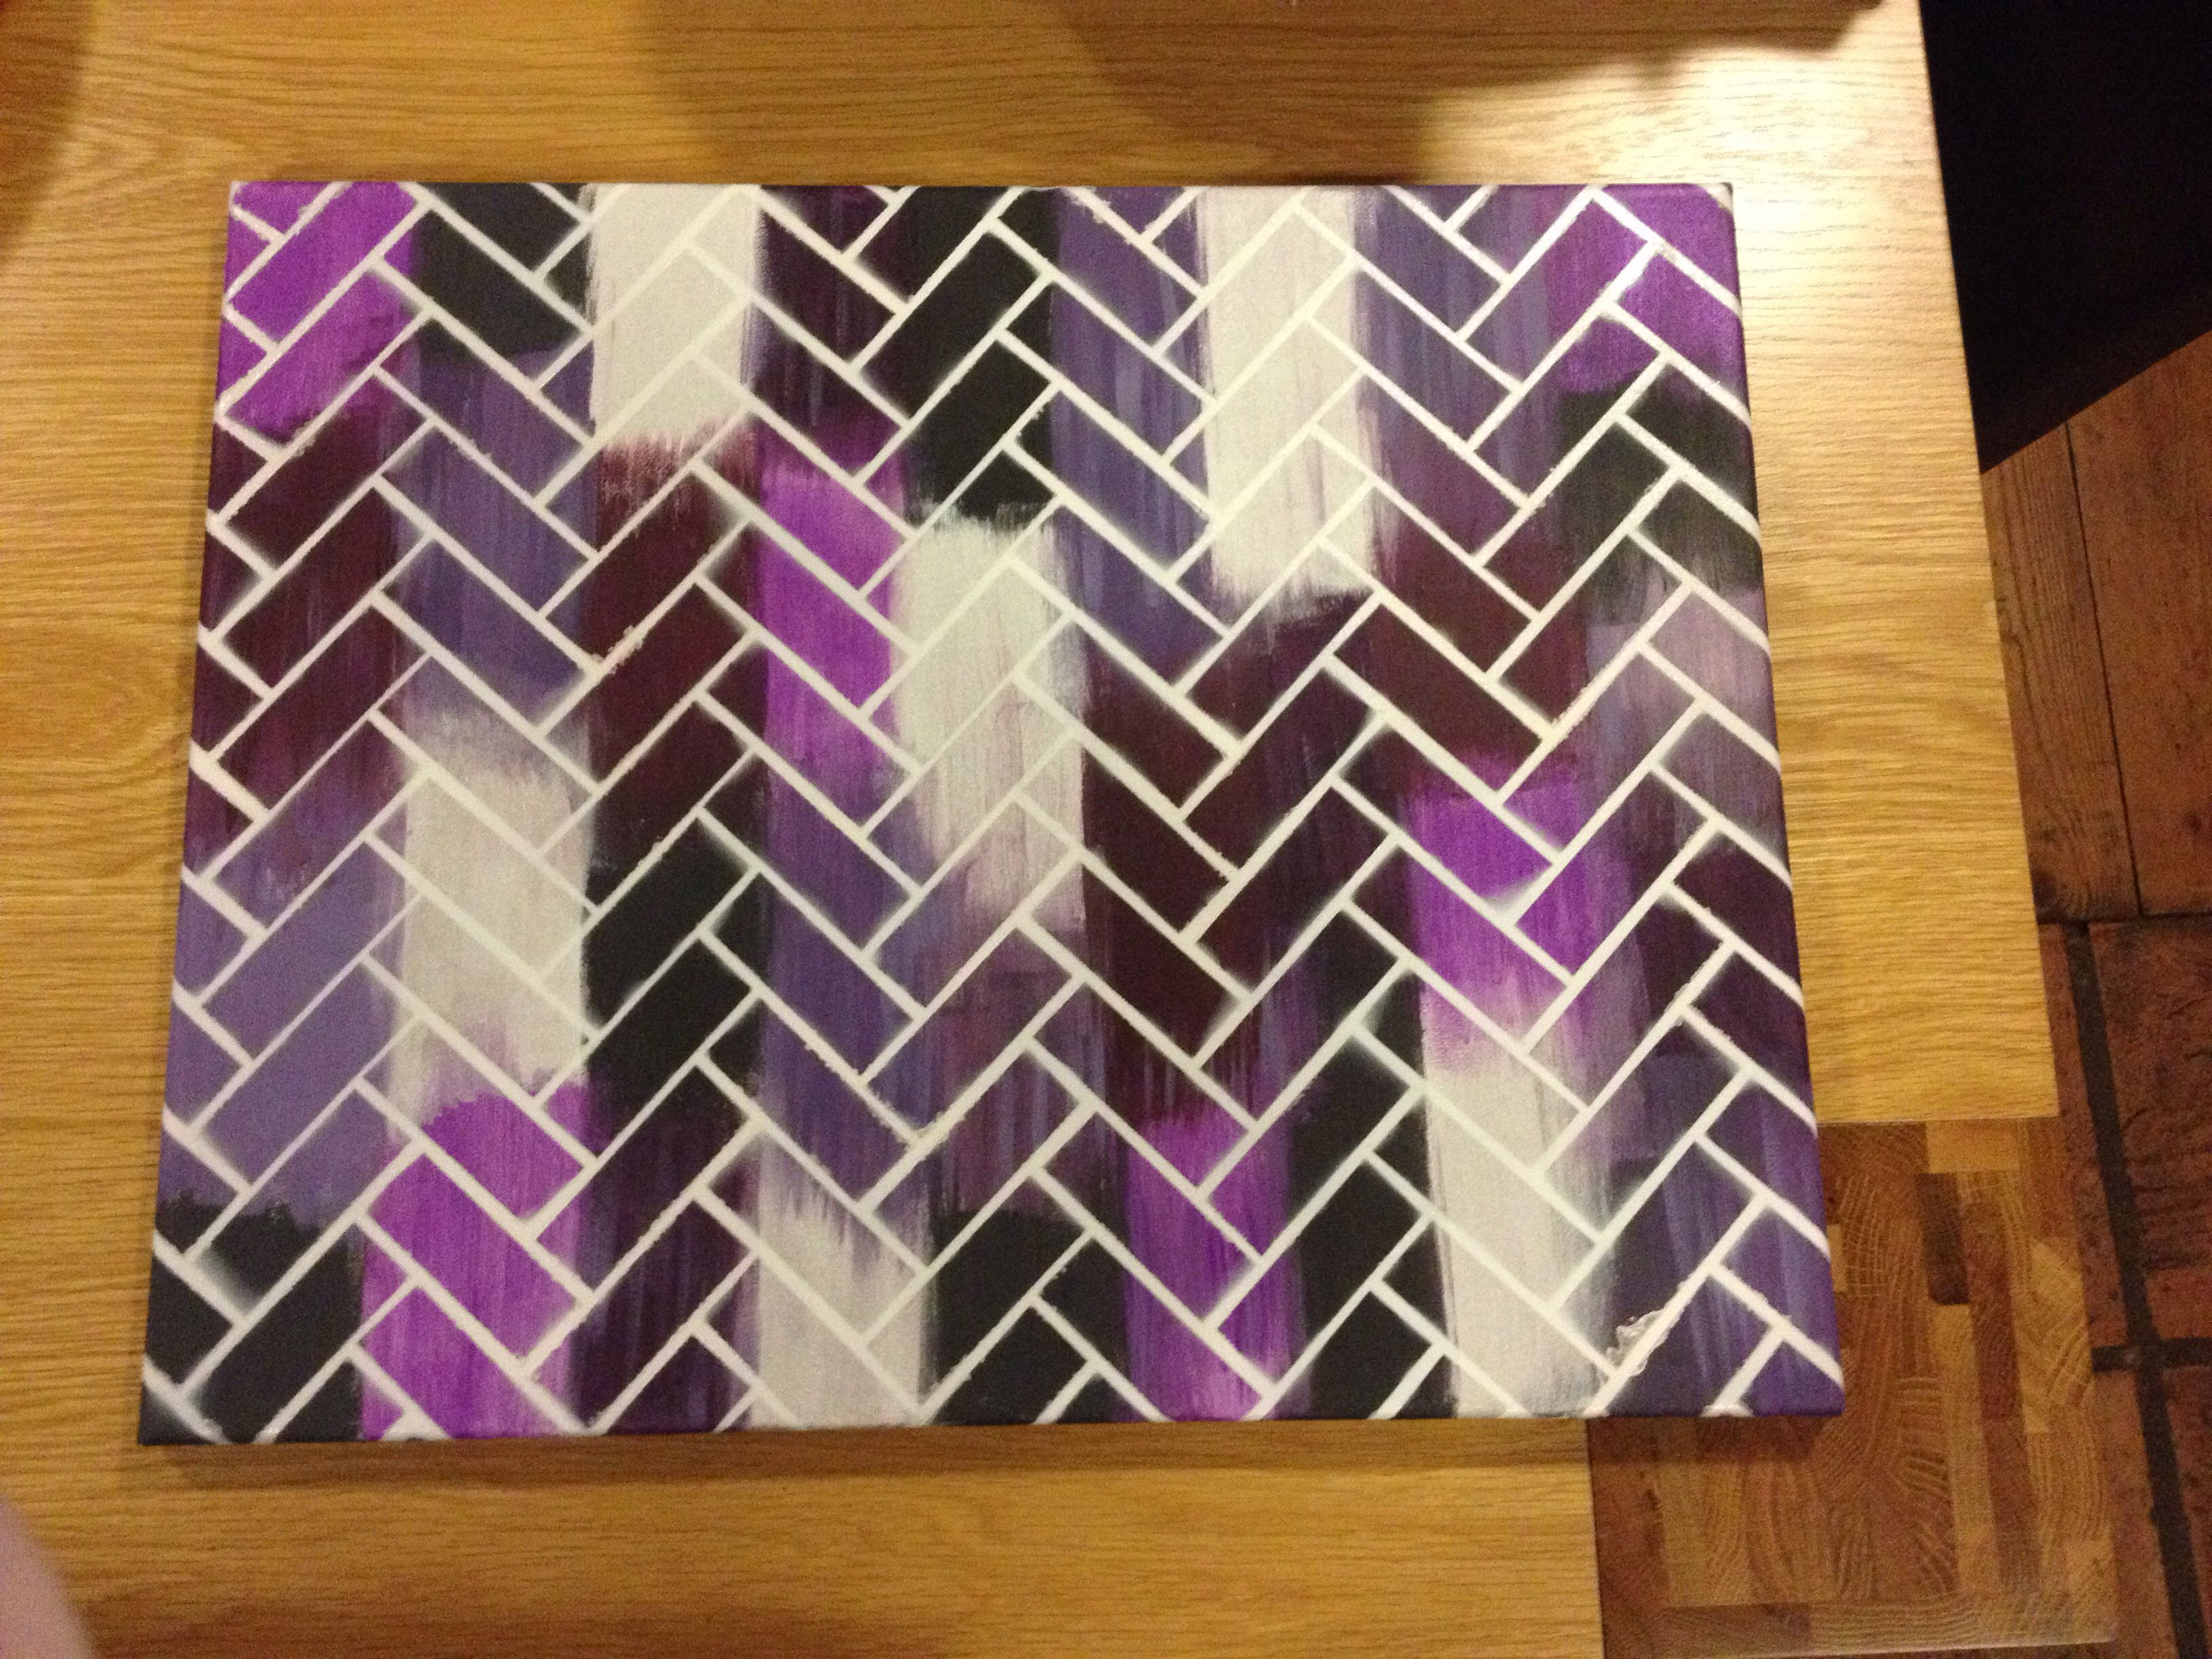 Diy Canvas Art Herringbone Pattern, Simple And Effective